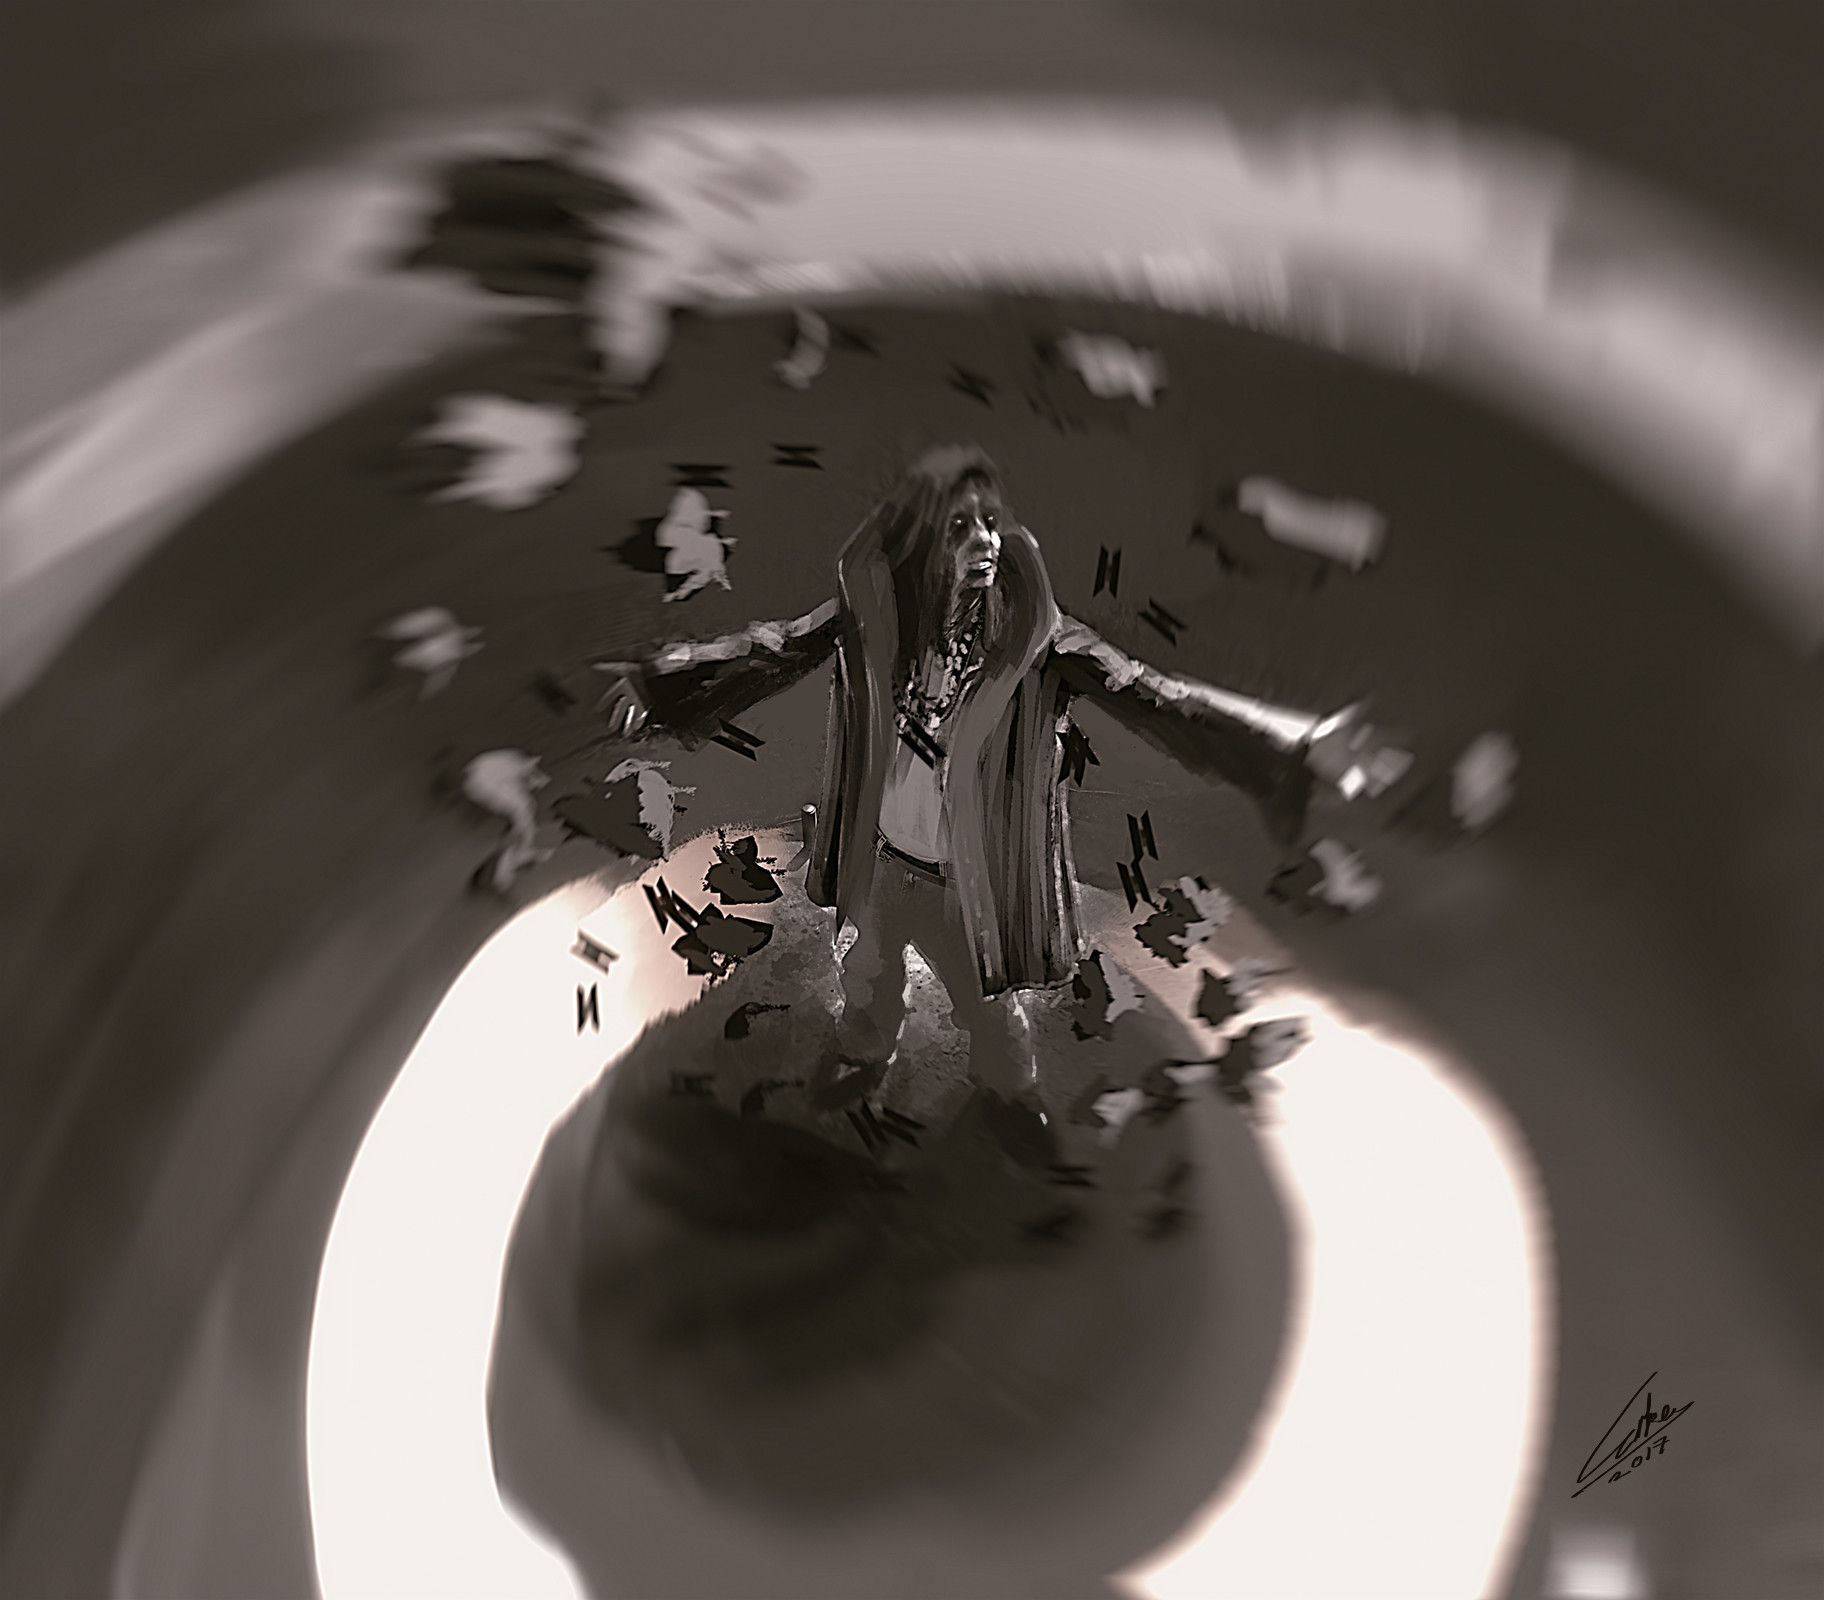 Bugra erke spitpaint antigravity april